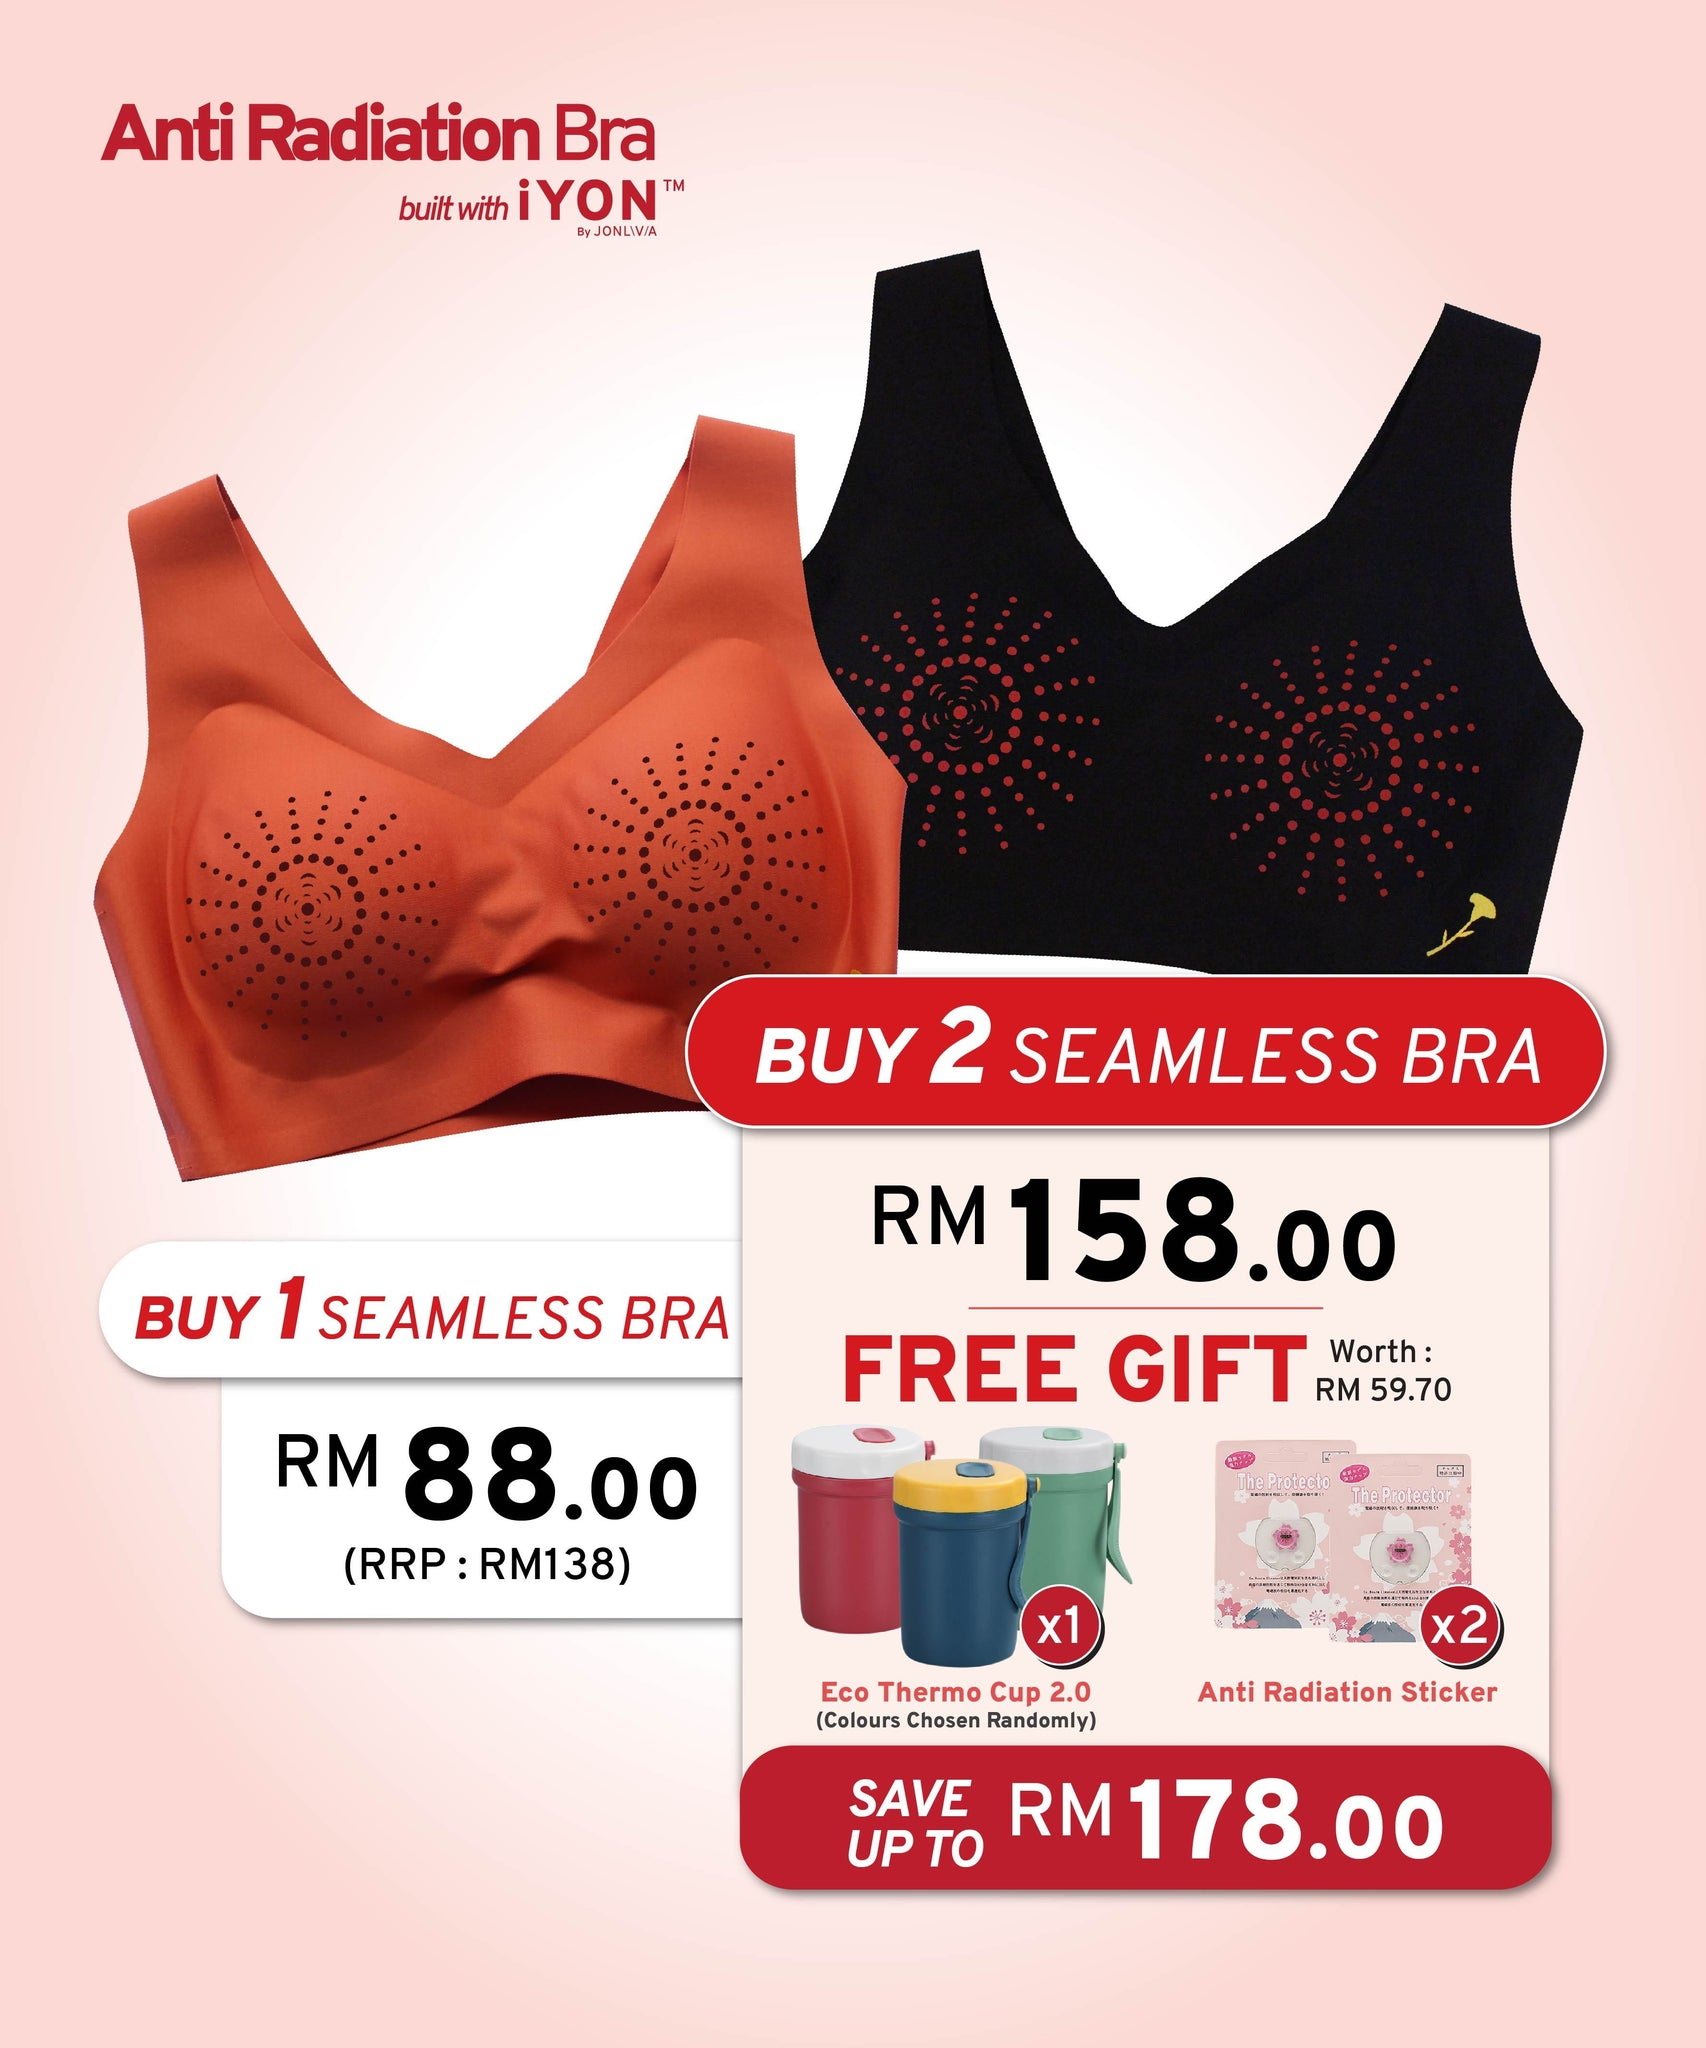 [PRE-ORDER] TWIN PACK iYON Anti Radiation Bra + FREE GIFTS